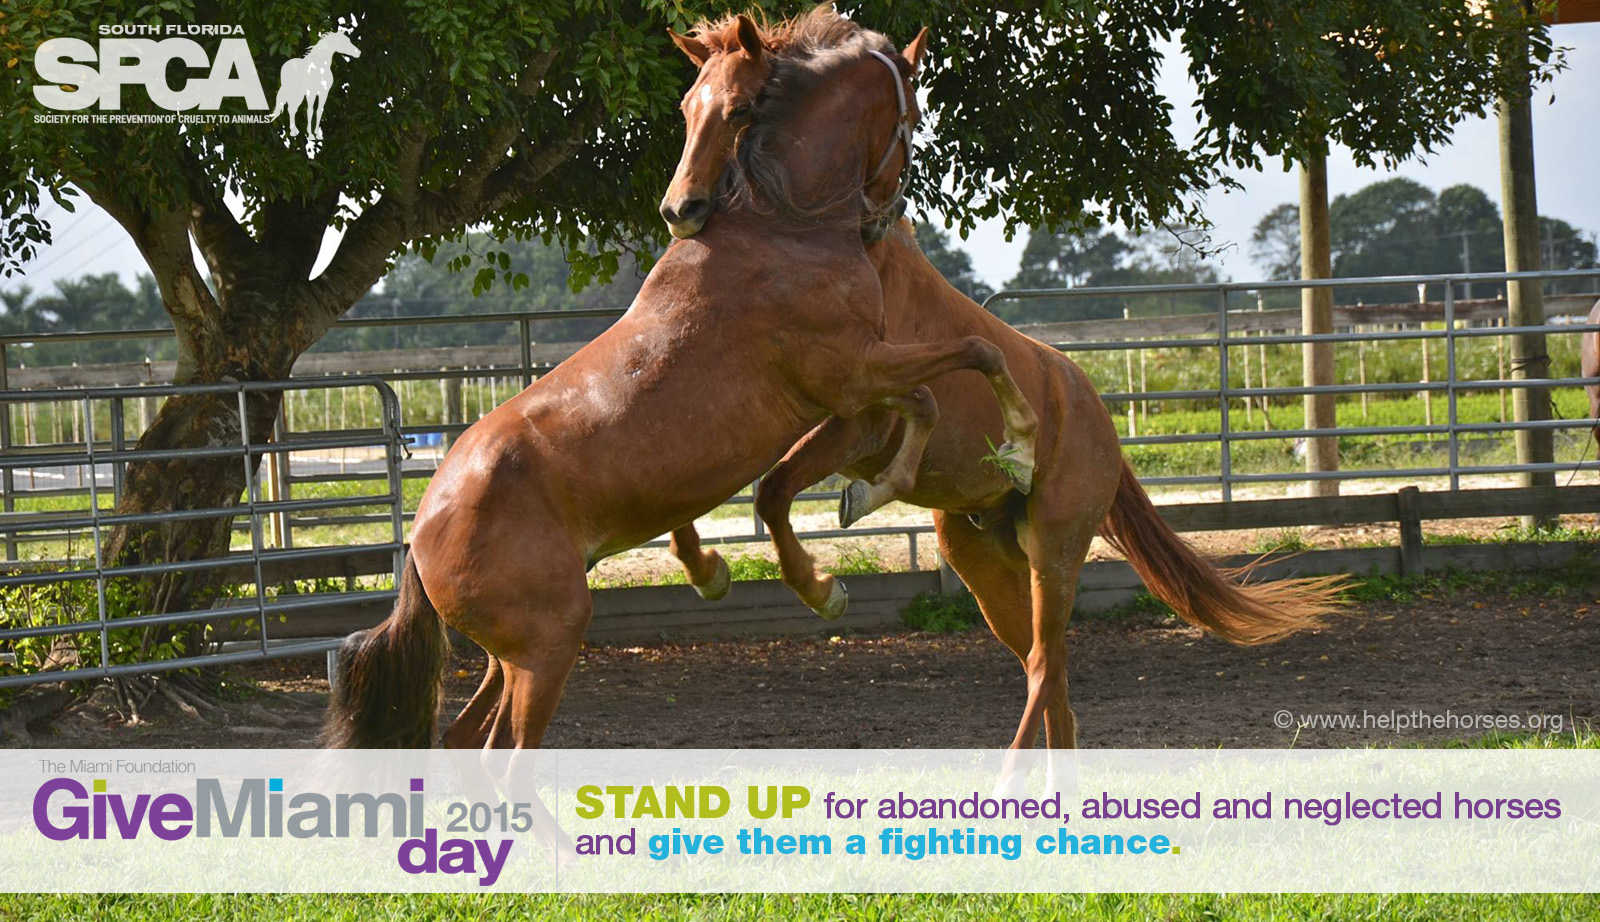 Stand Up for the Horses on Give Miami Day